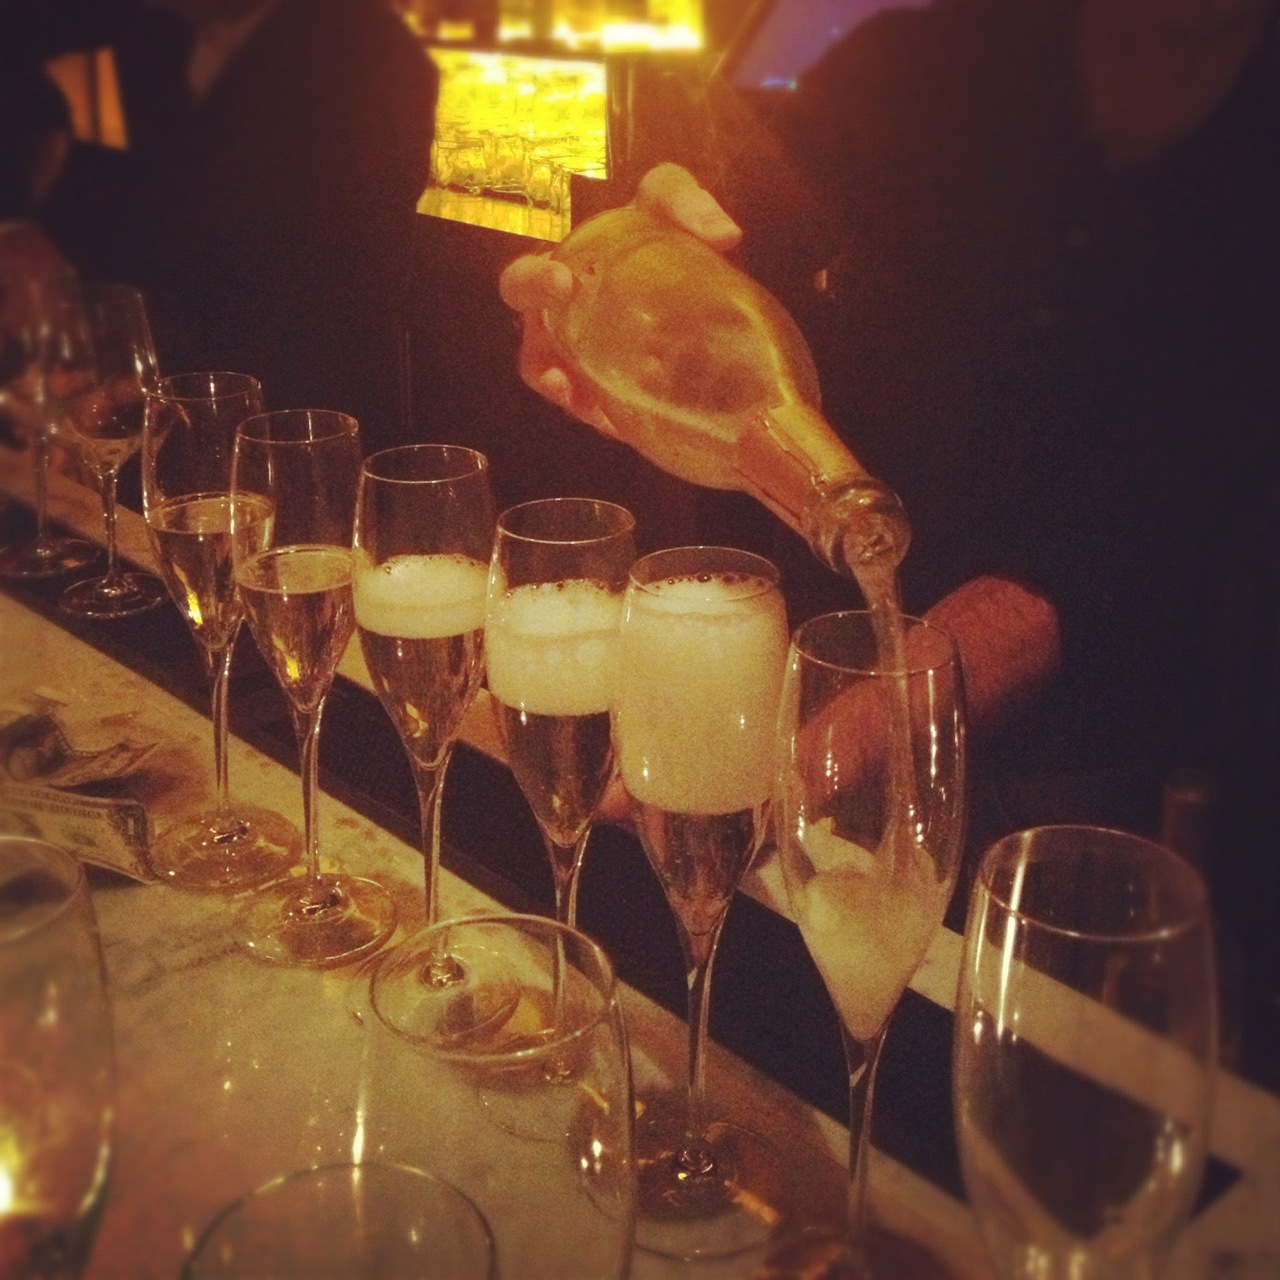 The prosecco was flowing at Antica Pesa!